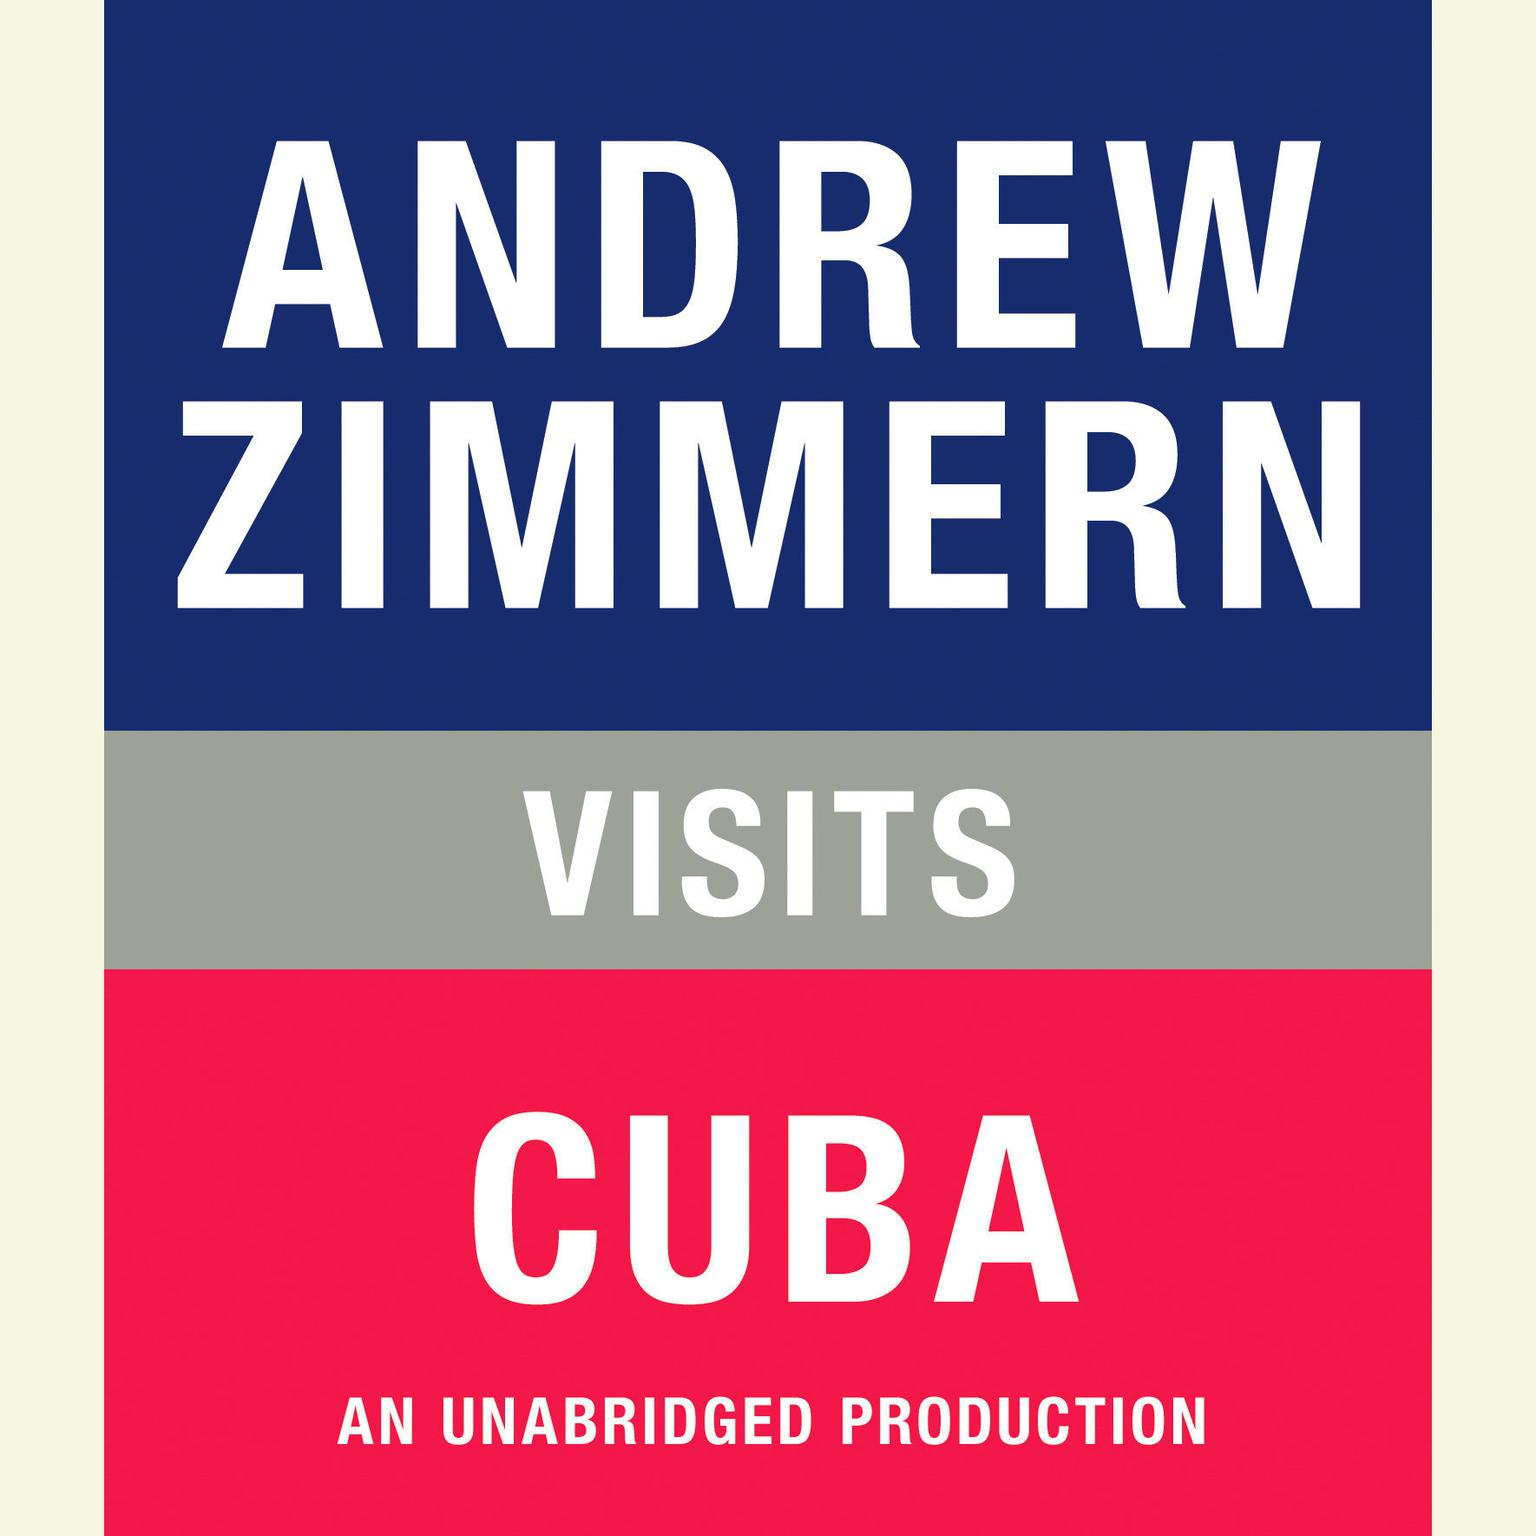 Printable Andrew Zimmern visits Cuba: Chapter 20 from THE BIZARRE TRUTH Audiobook Cover Art